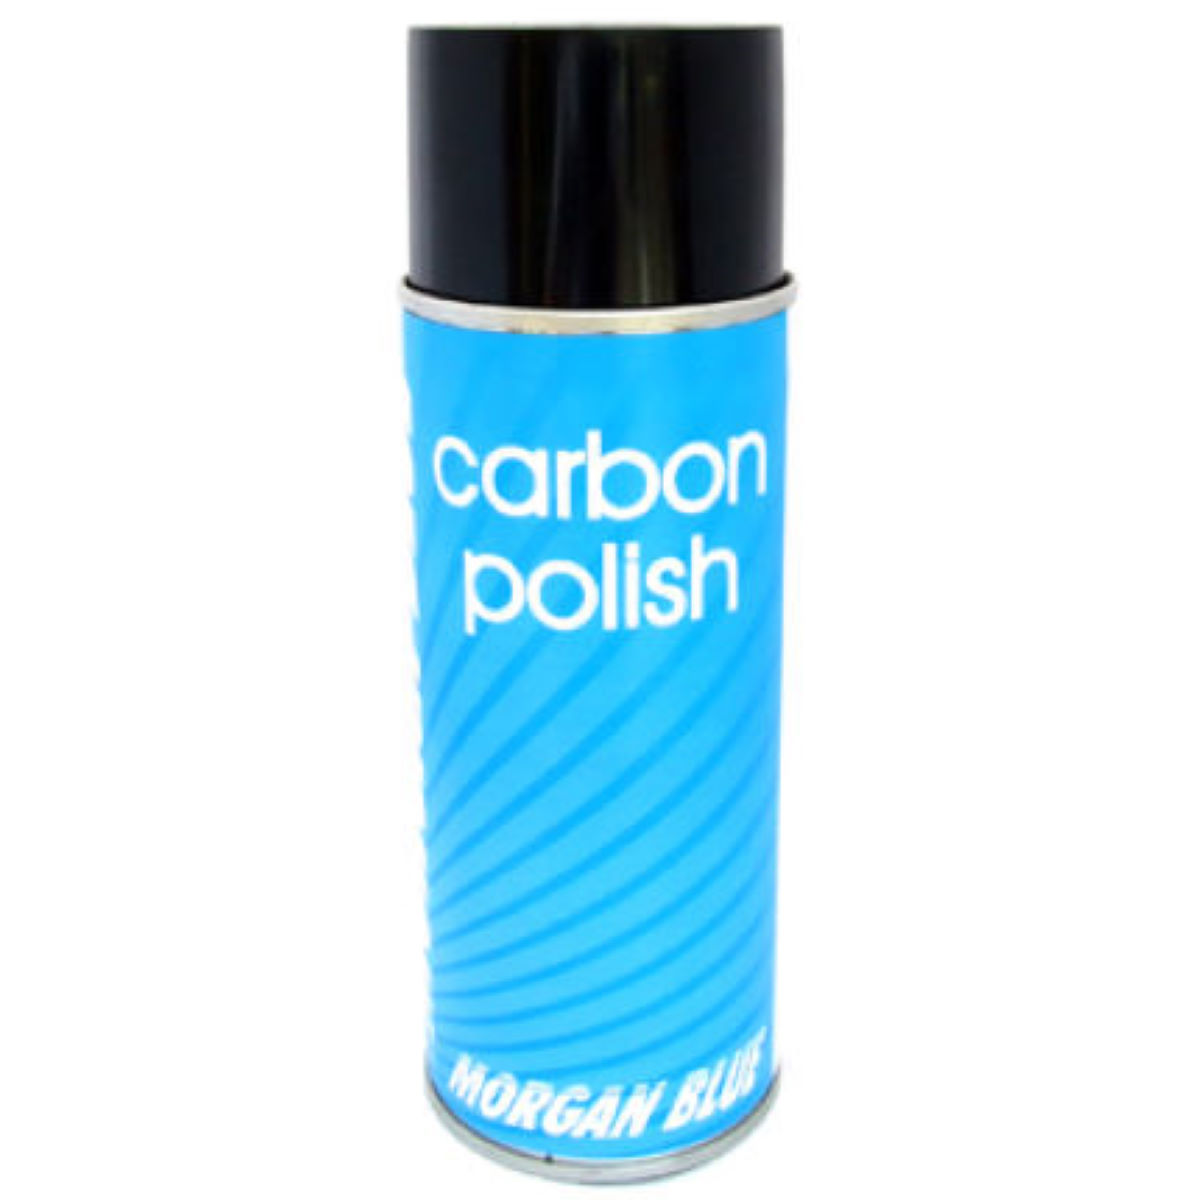 Morgan Blue Carbon Polish - 400ml Aerosol